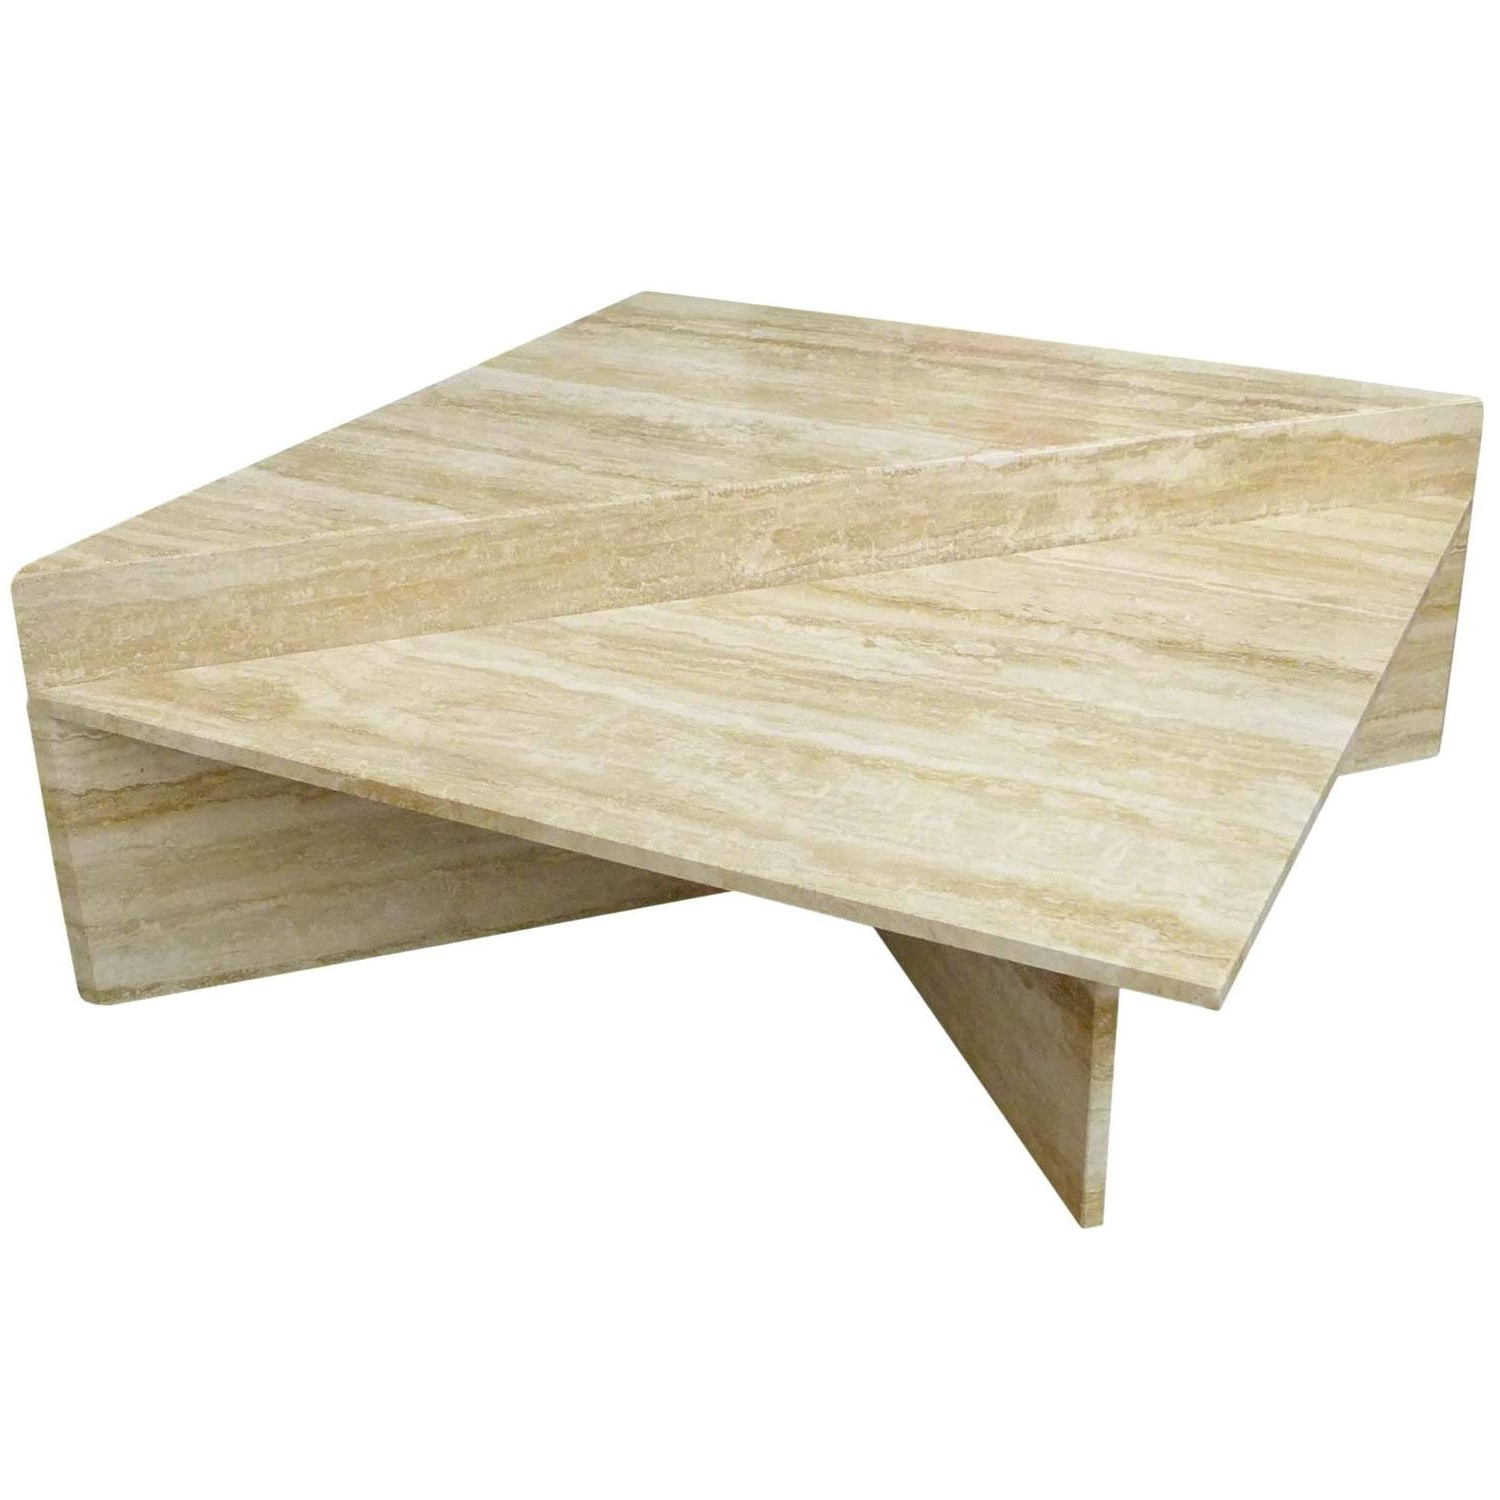 Newest Modular Coffee Tables Throughout Two Piece Modular Travertine Coffee Table At 1stdibs (View 15 of 20)